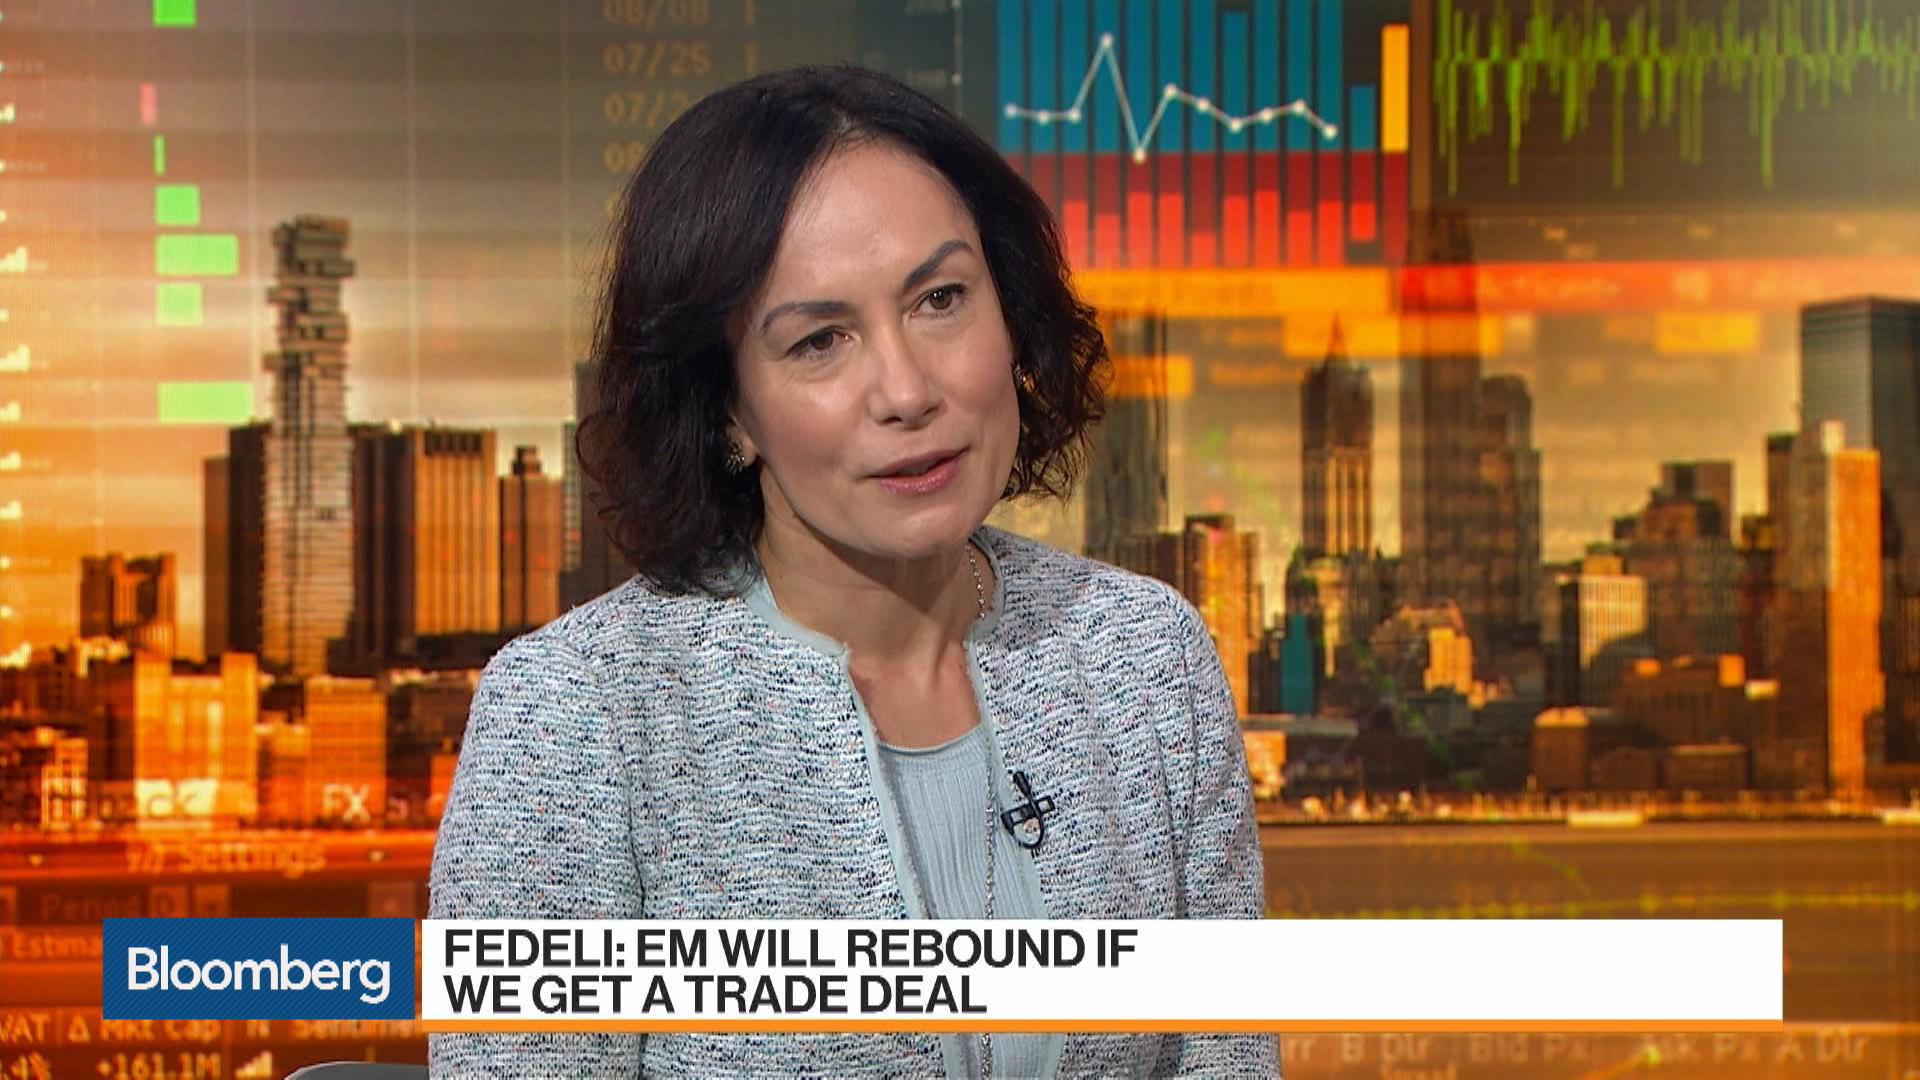 Emerging Markets Will Rebound on Trade Deal: Fabiana Fedeli